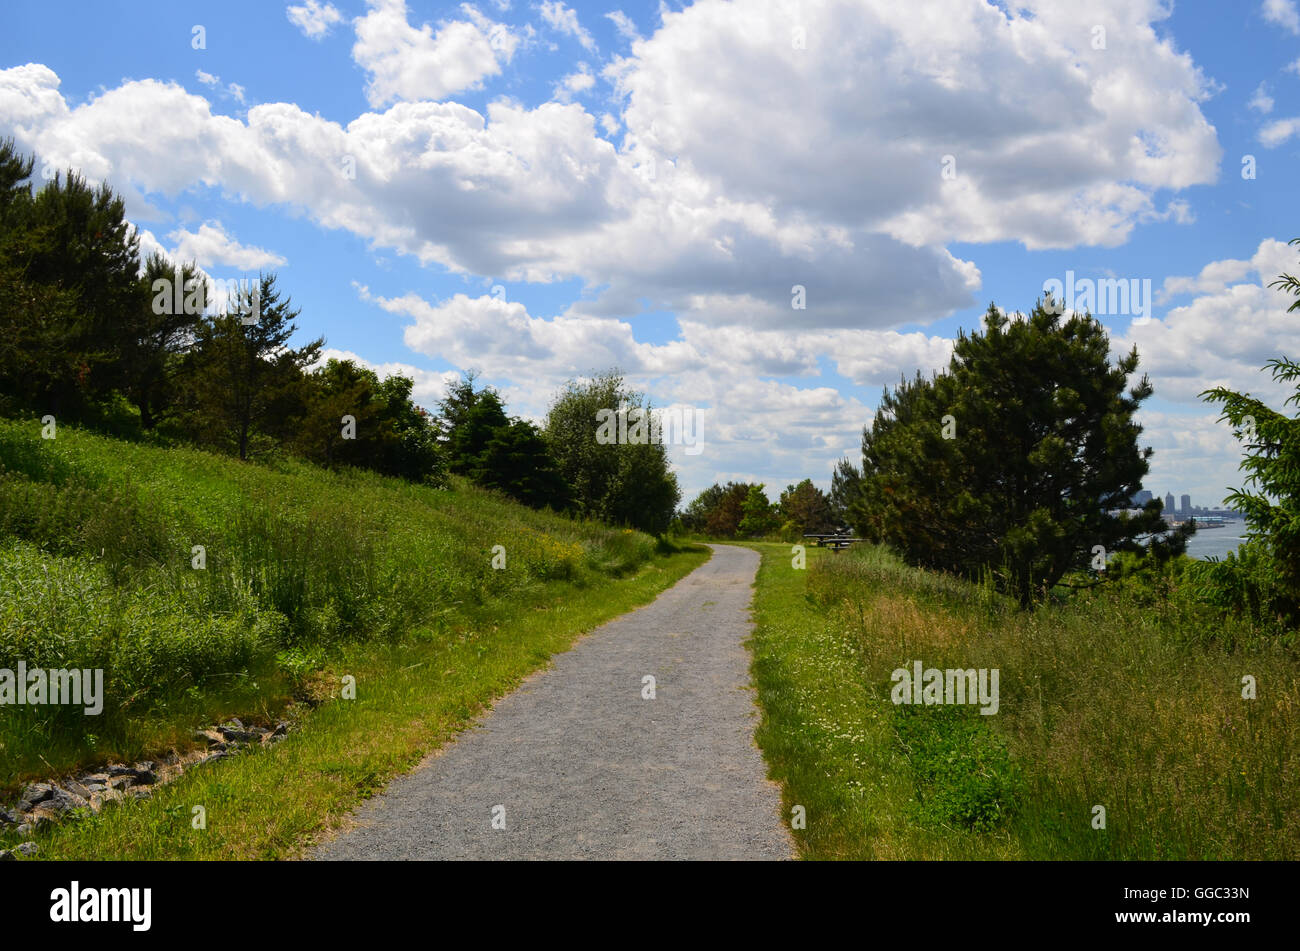 Lush grass and beautiful skies bordering a beautiful hiking trail on Boston Harbor Island. - Stock Image